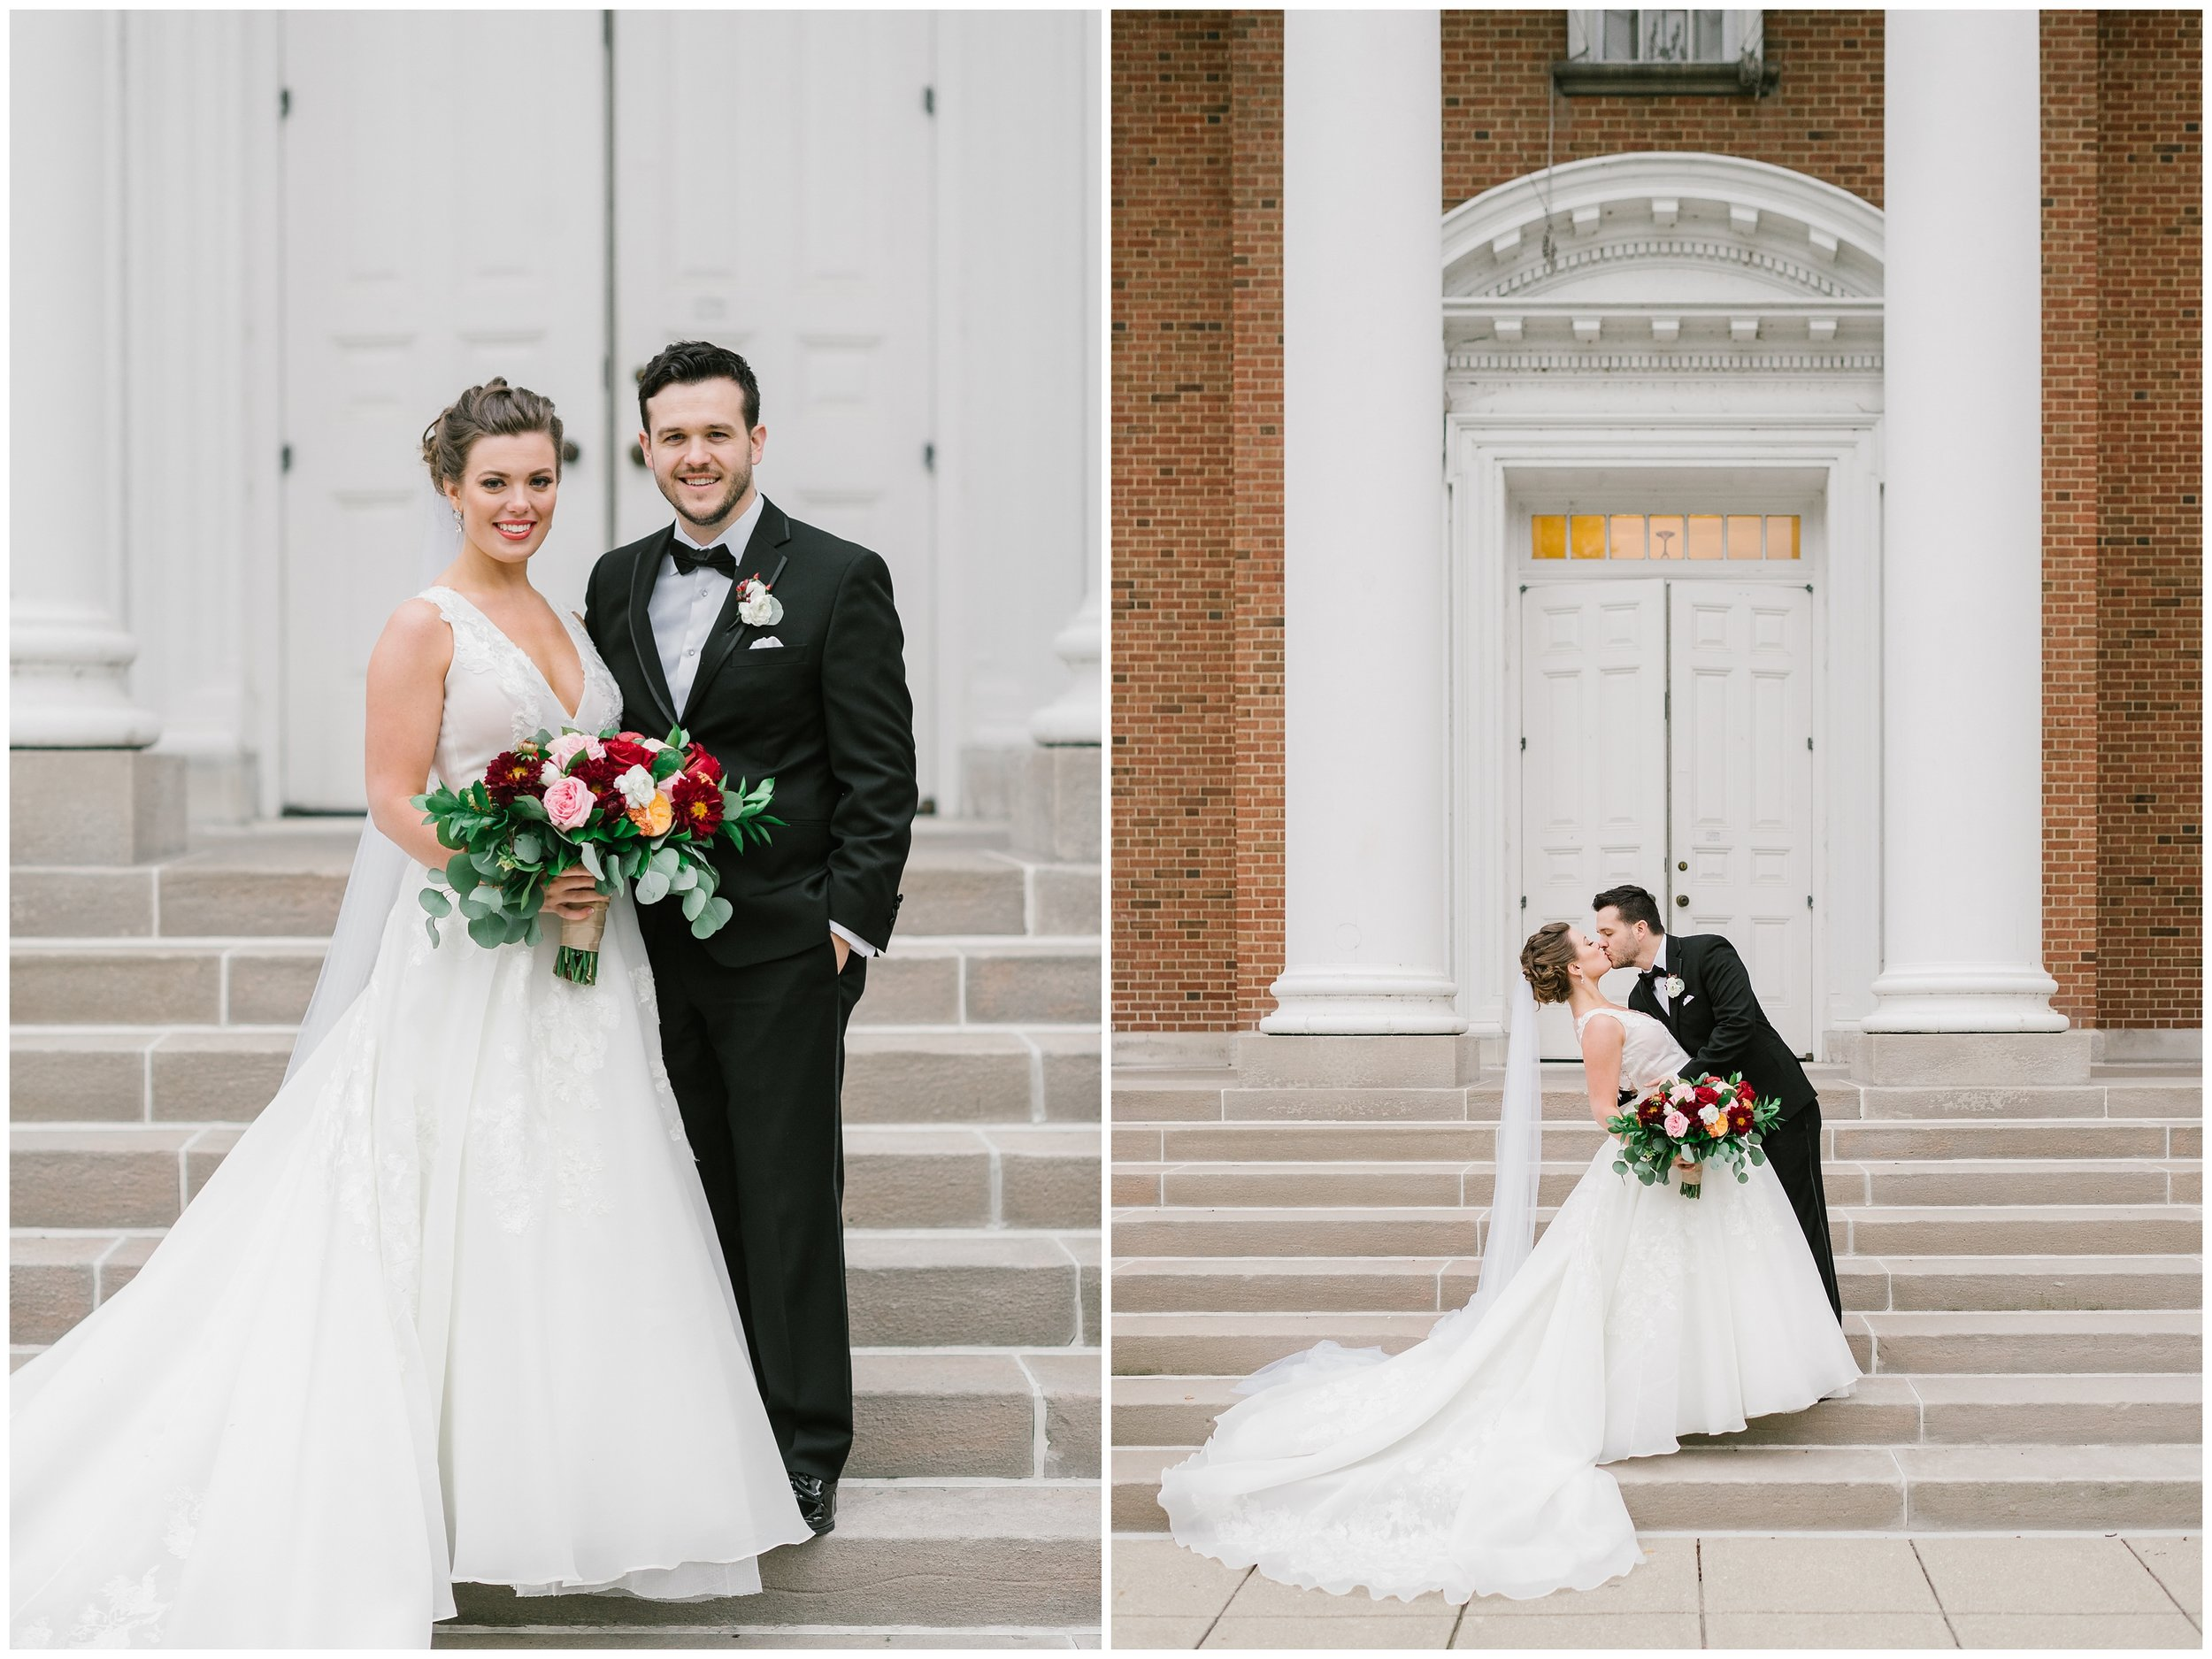 Rebecca_Shehorn_Photography_Indianapolis_Wedding_Photographer_7764.jpg